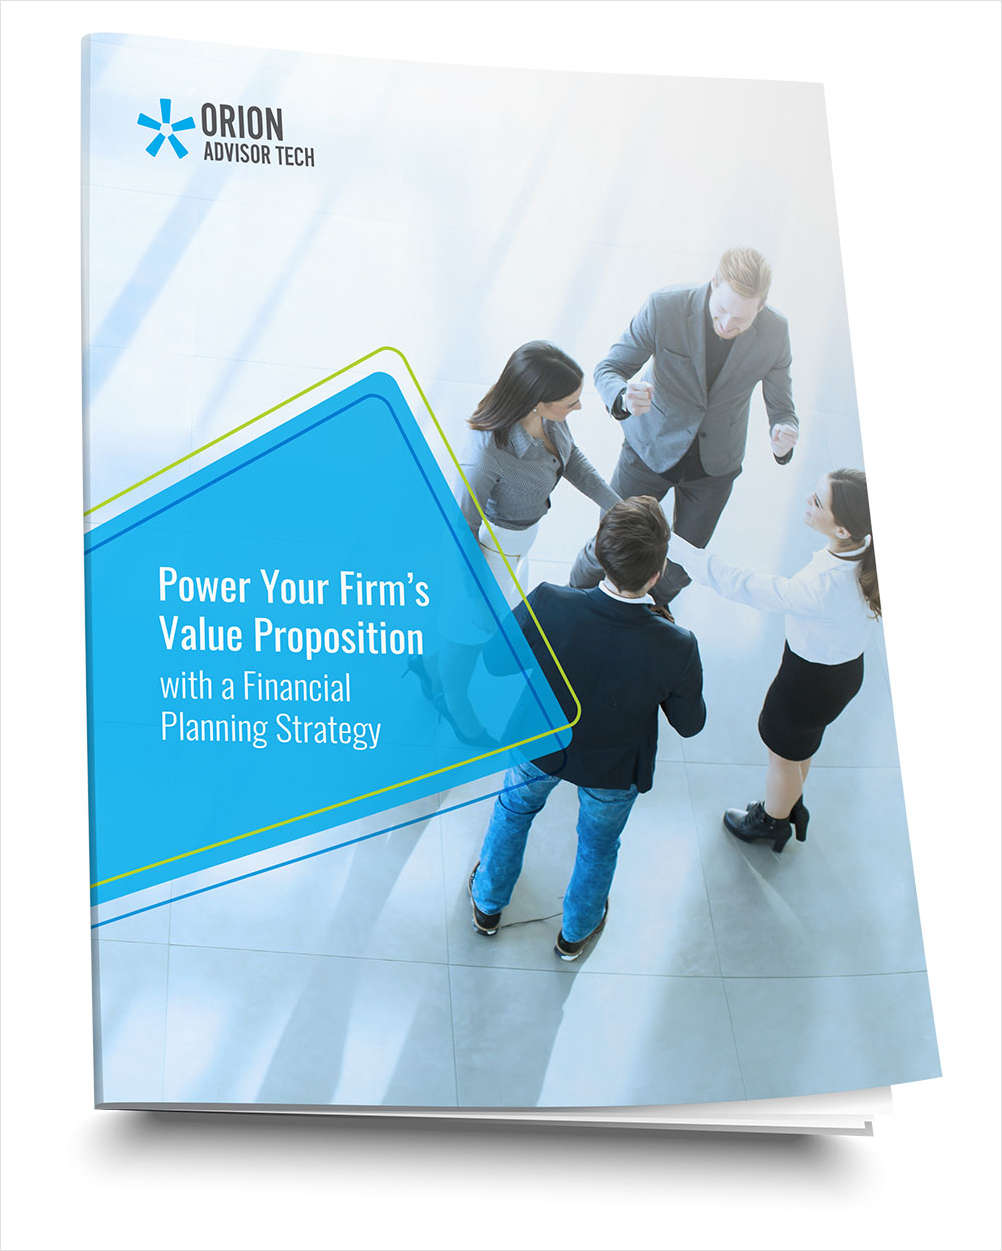 Power Your Firm's Value Proposition with a Financial Planning Strategy